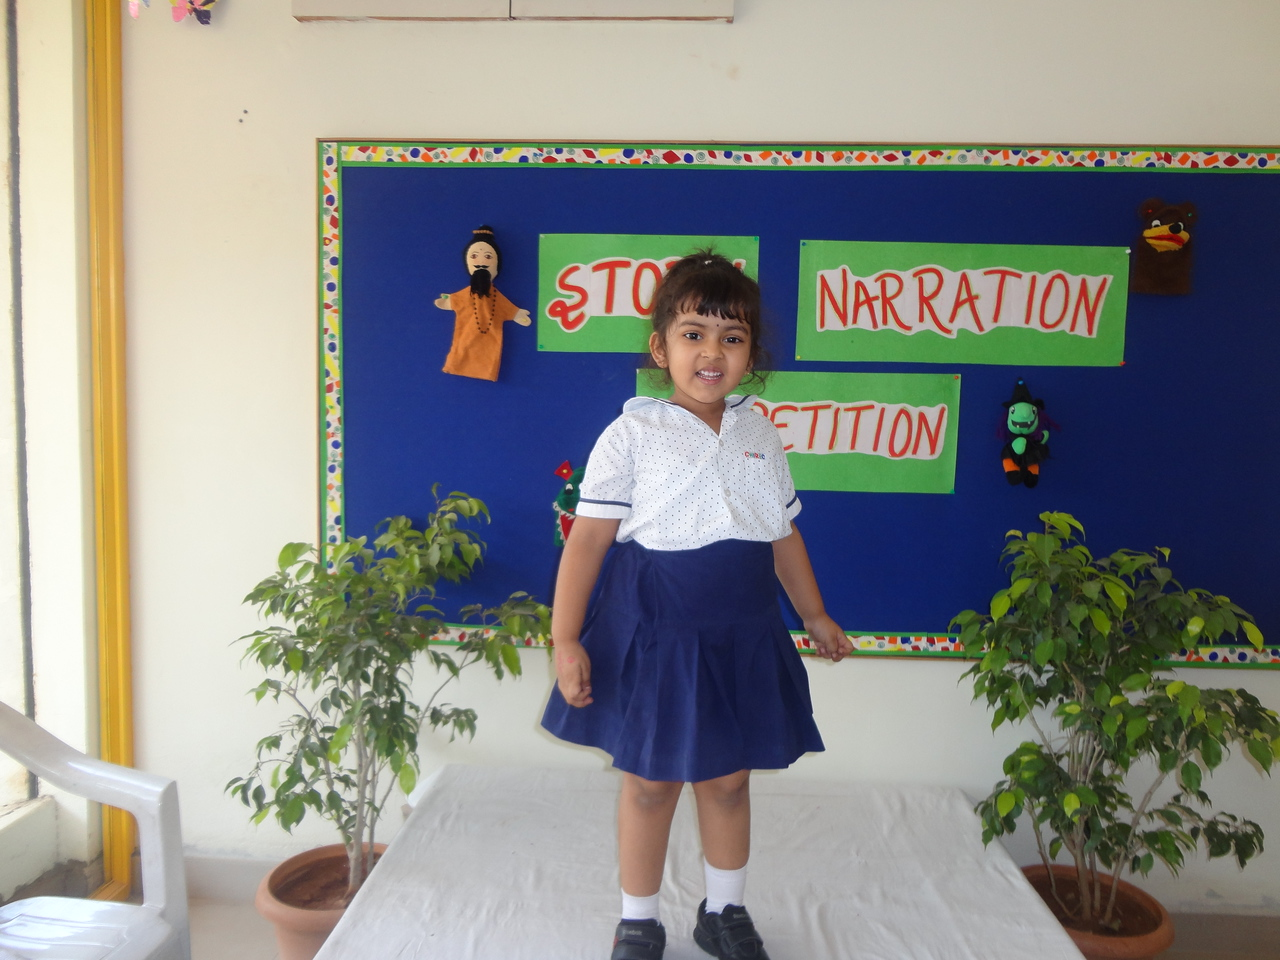 ANIKKHA DURING PRELIM ROUND OF STORY NARRATION COMPETITION